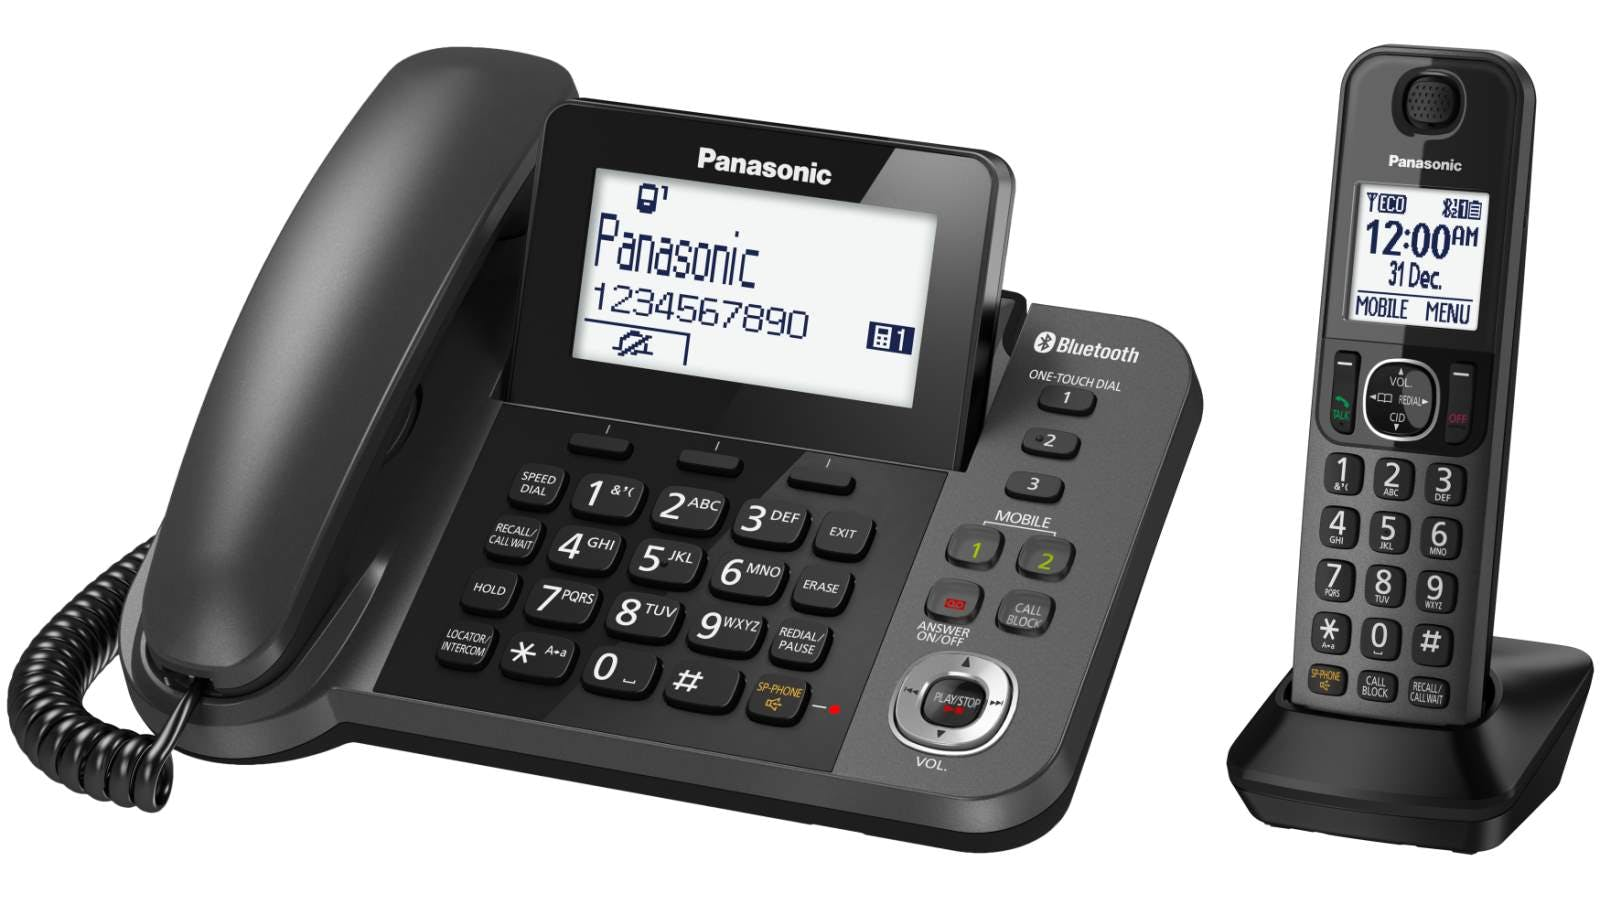 Panasonic Kx Tgf380azm Corded And Cordless Phone Harvey Norman New